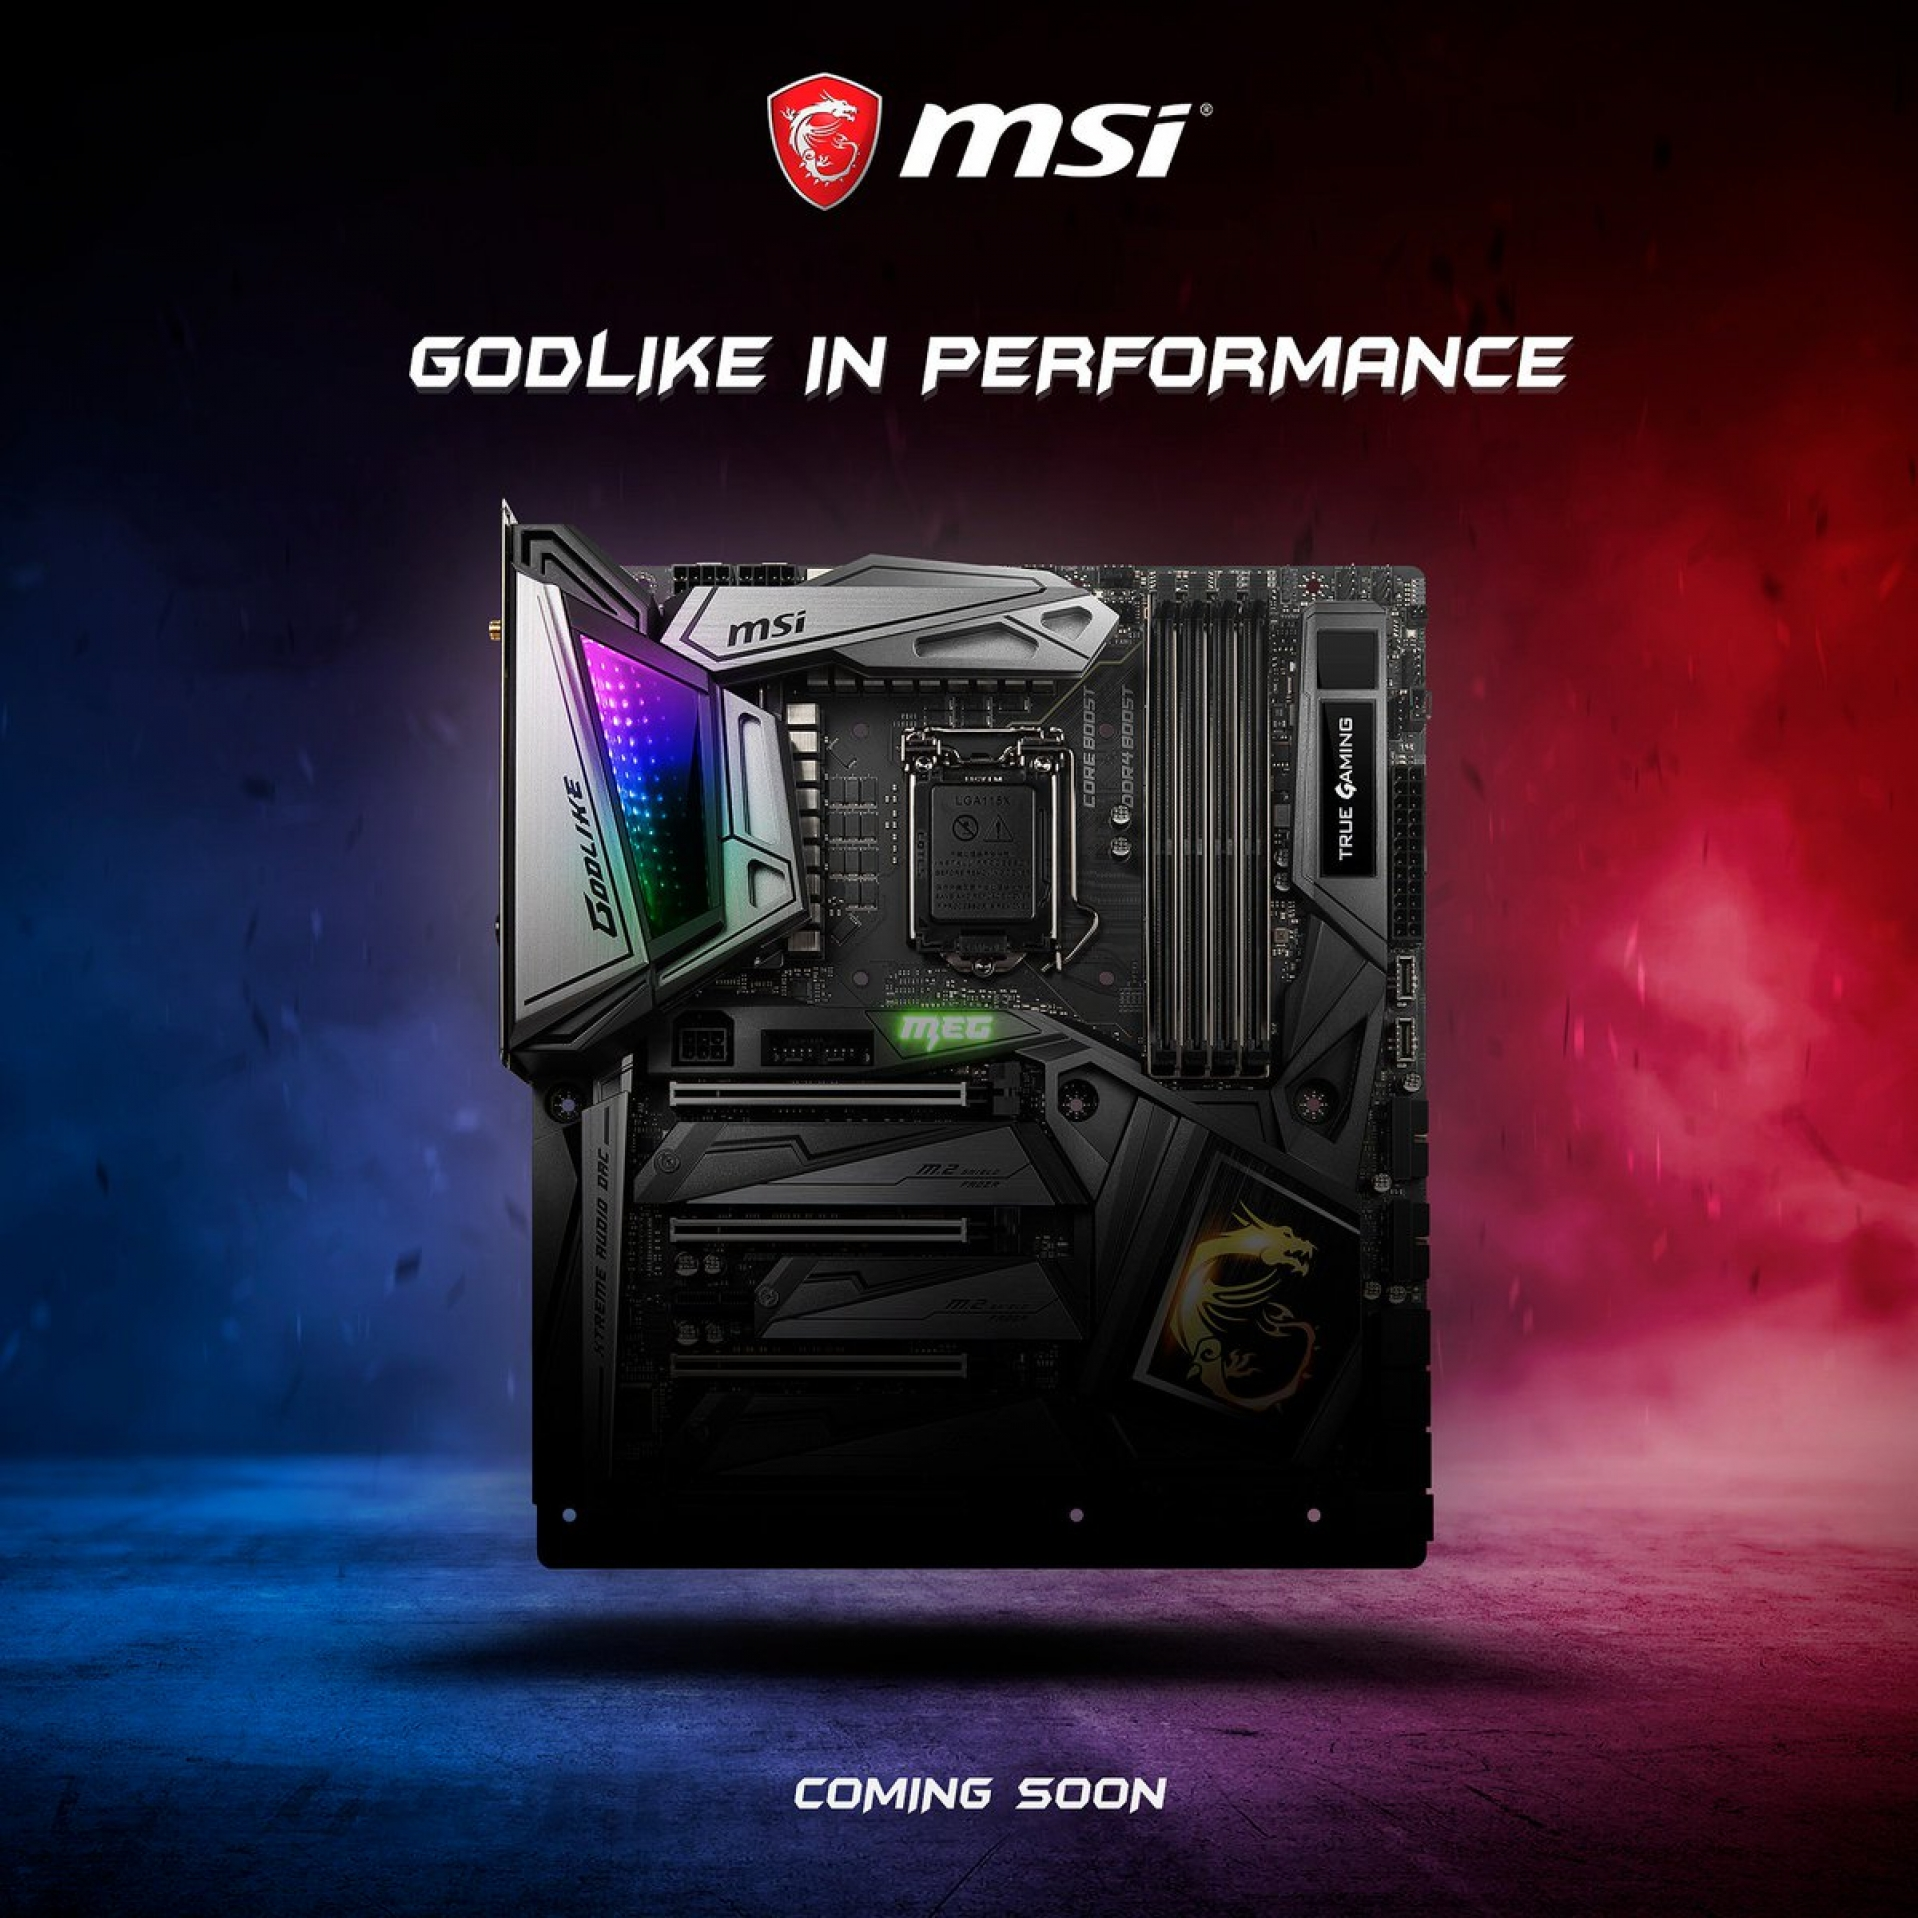 MSI MEG Z390 GODLIKE Motherboard pictured | OC3D News